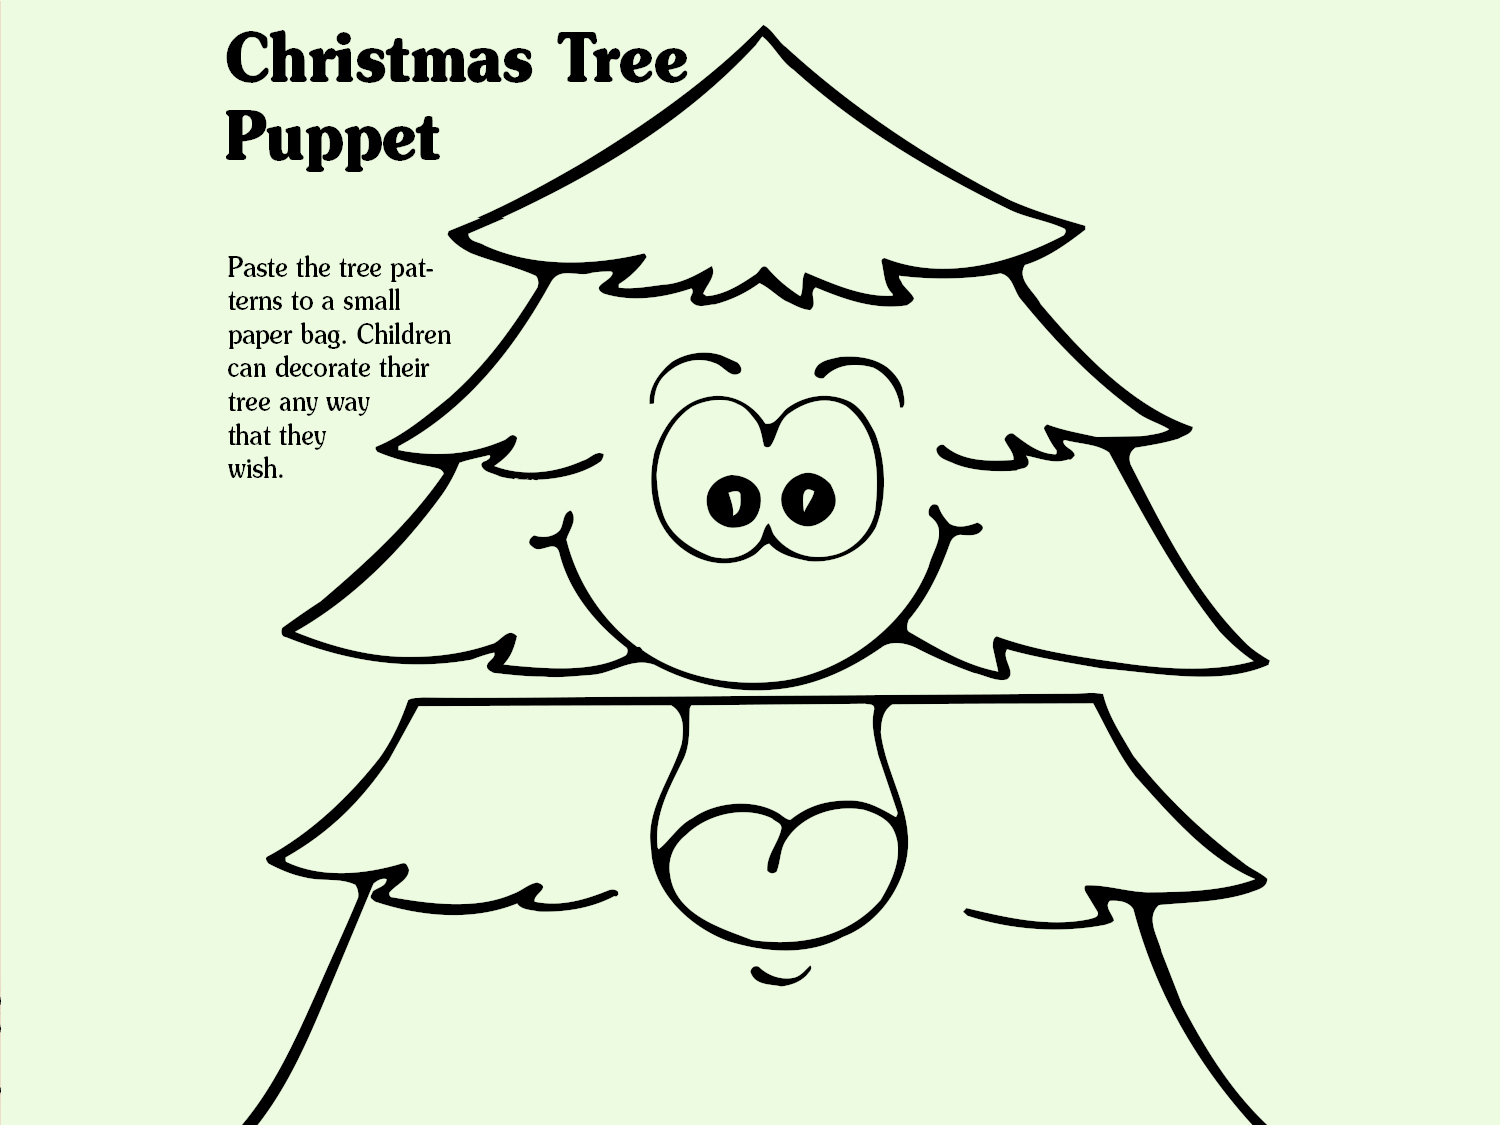 Christmas Tree Puppet